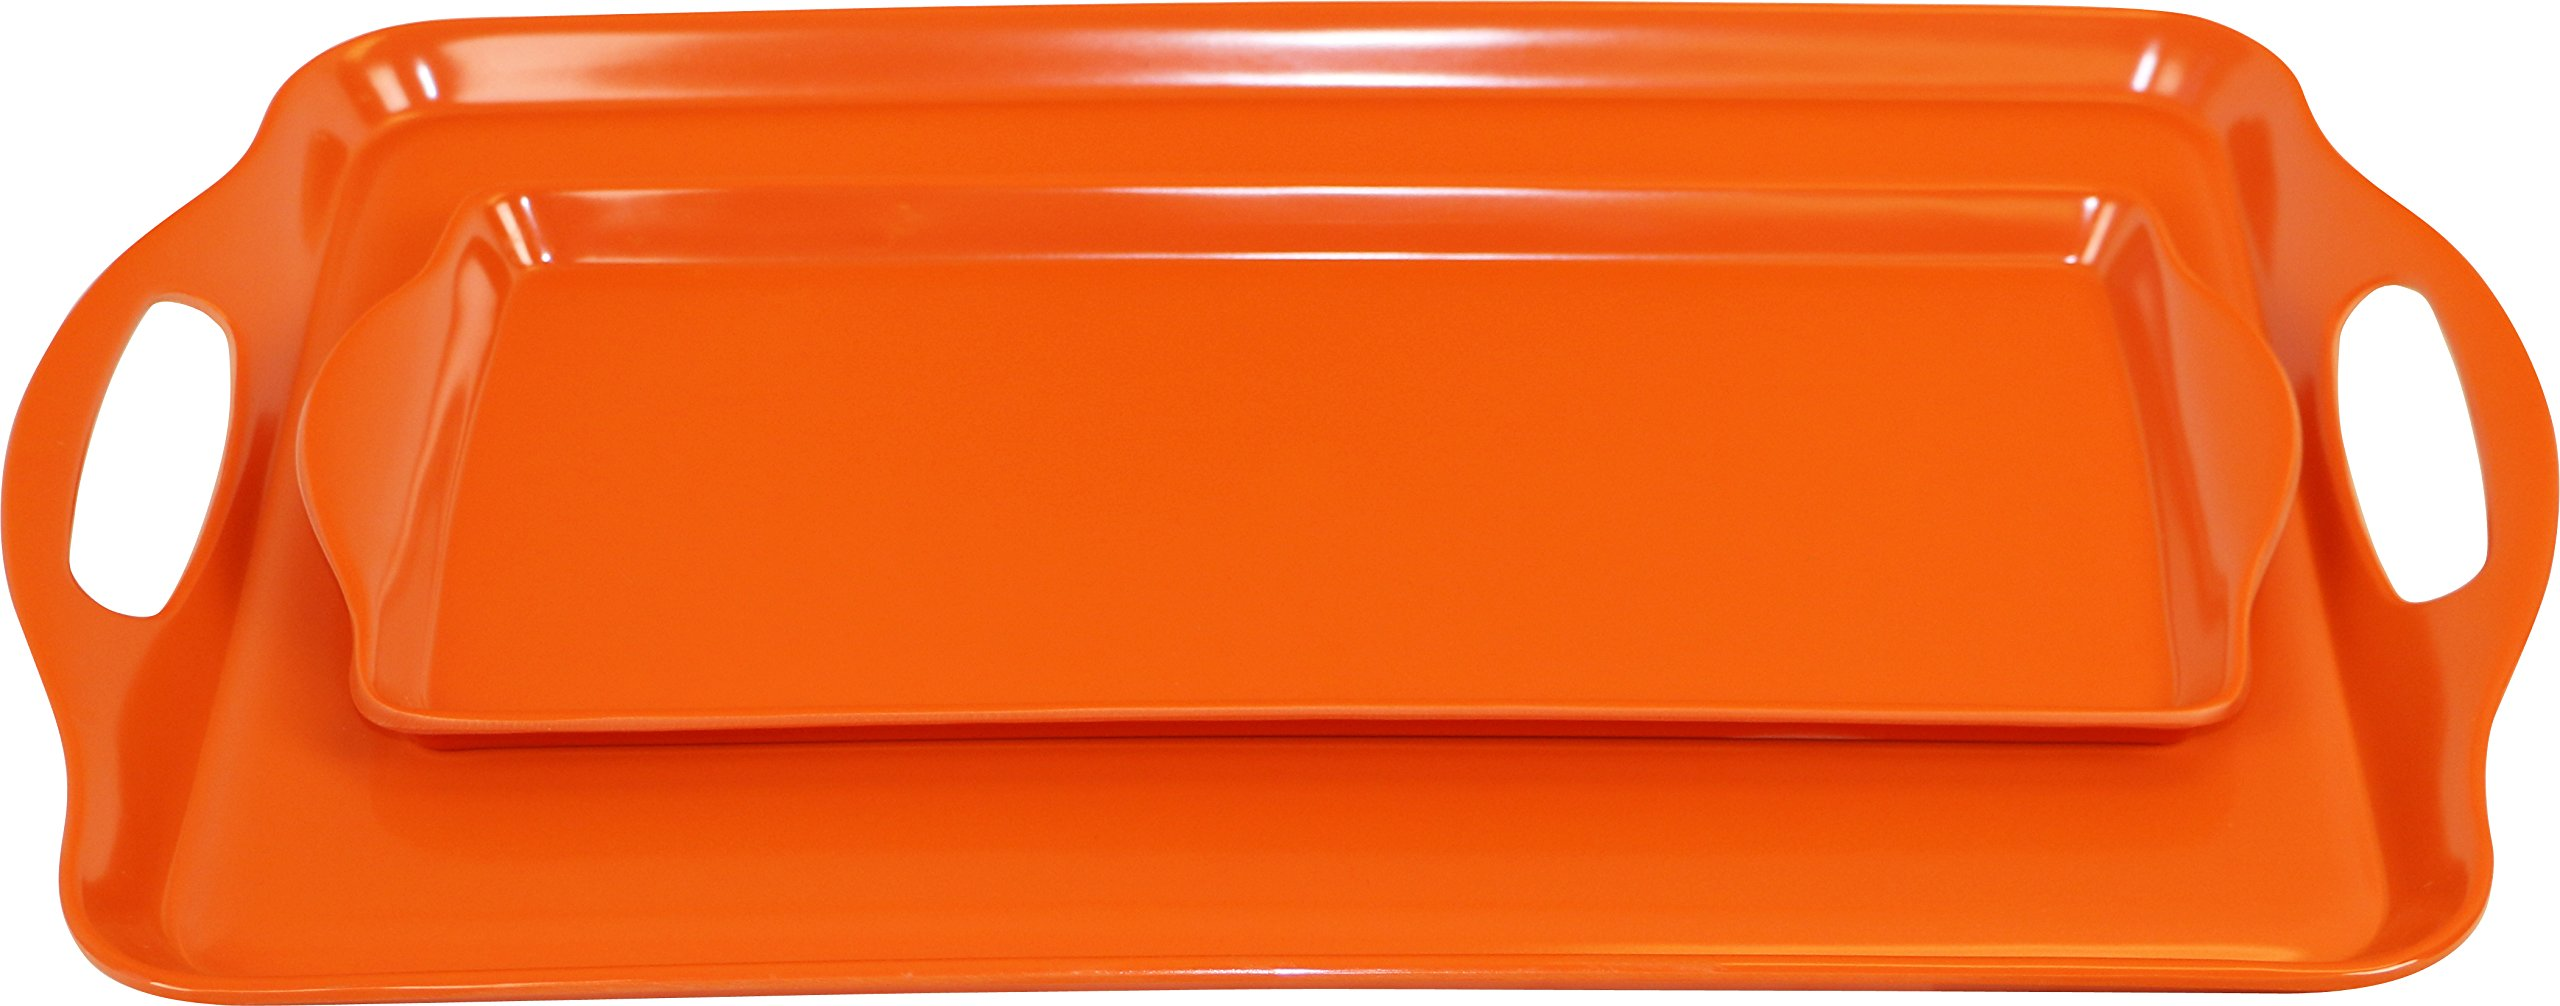 Calypso Basics Rectangular and Tidbit Serving Tray Set, Orange